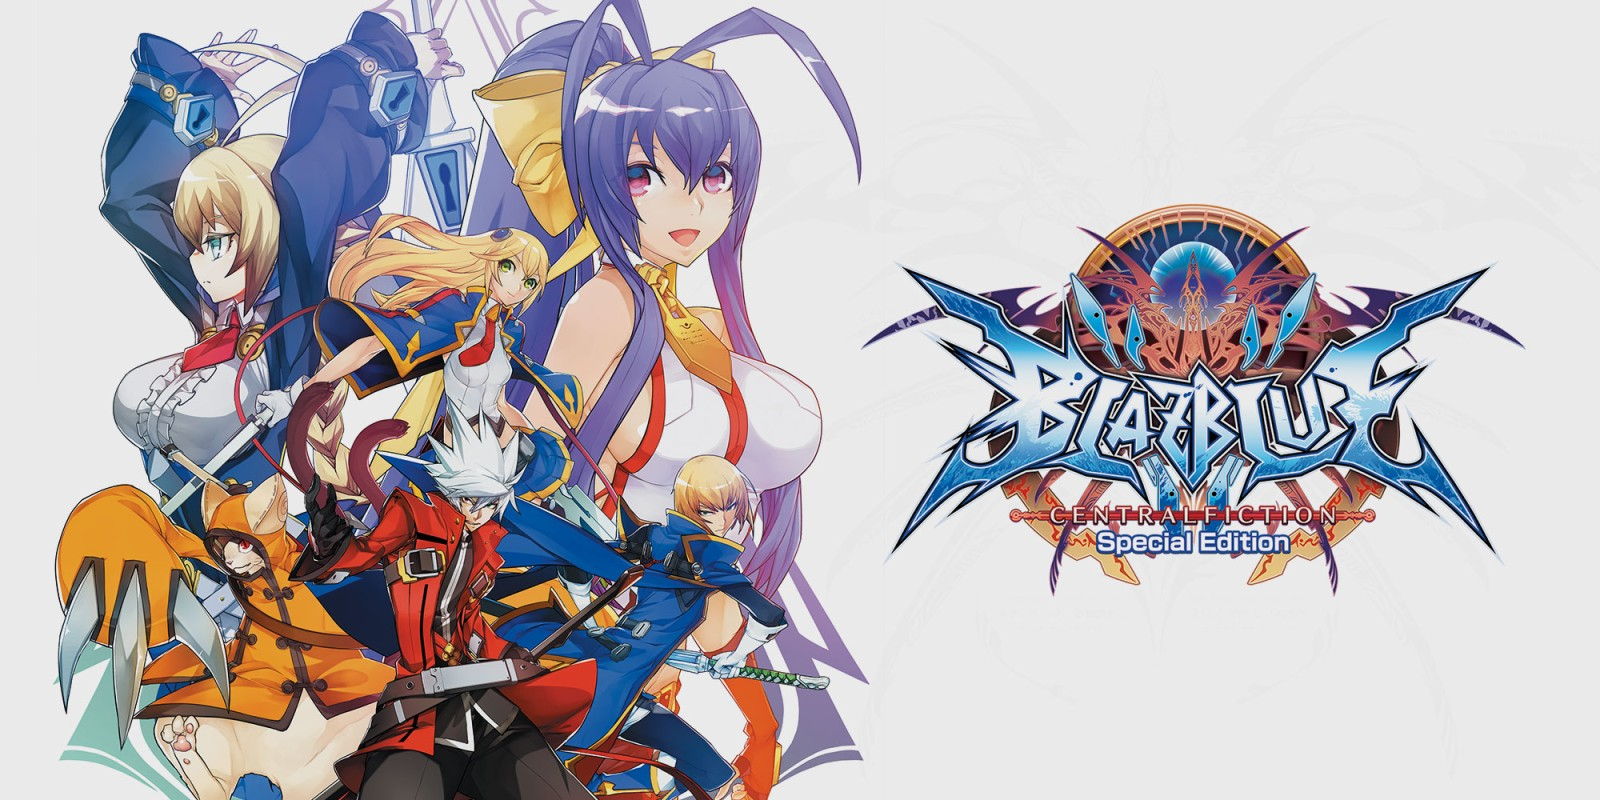 BlazBlue Central Fiction Special Edition review – final fight